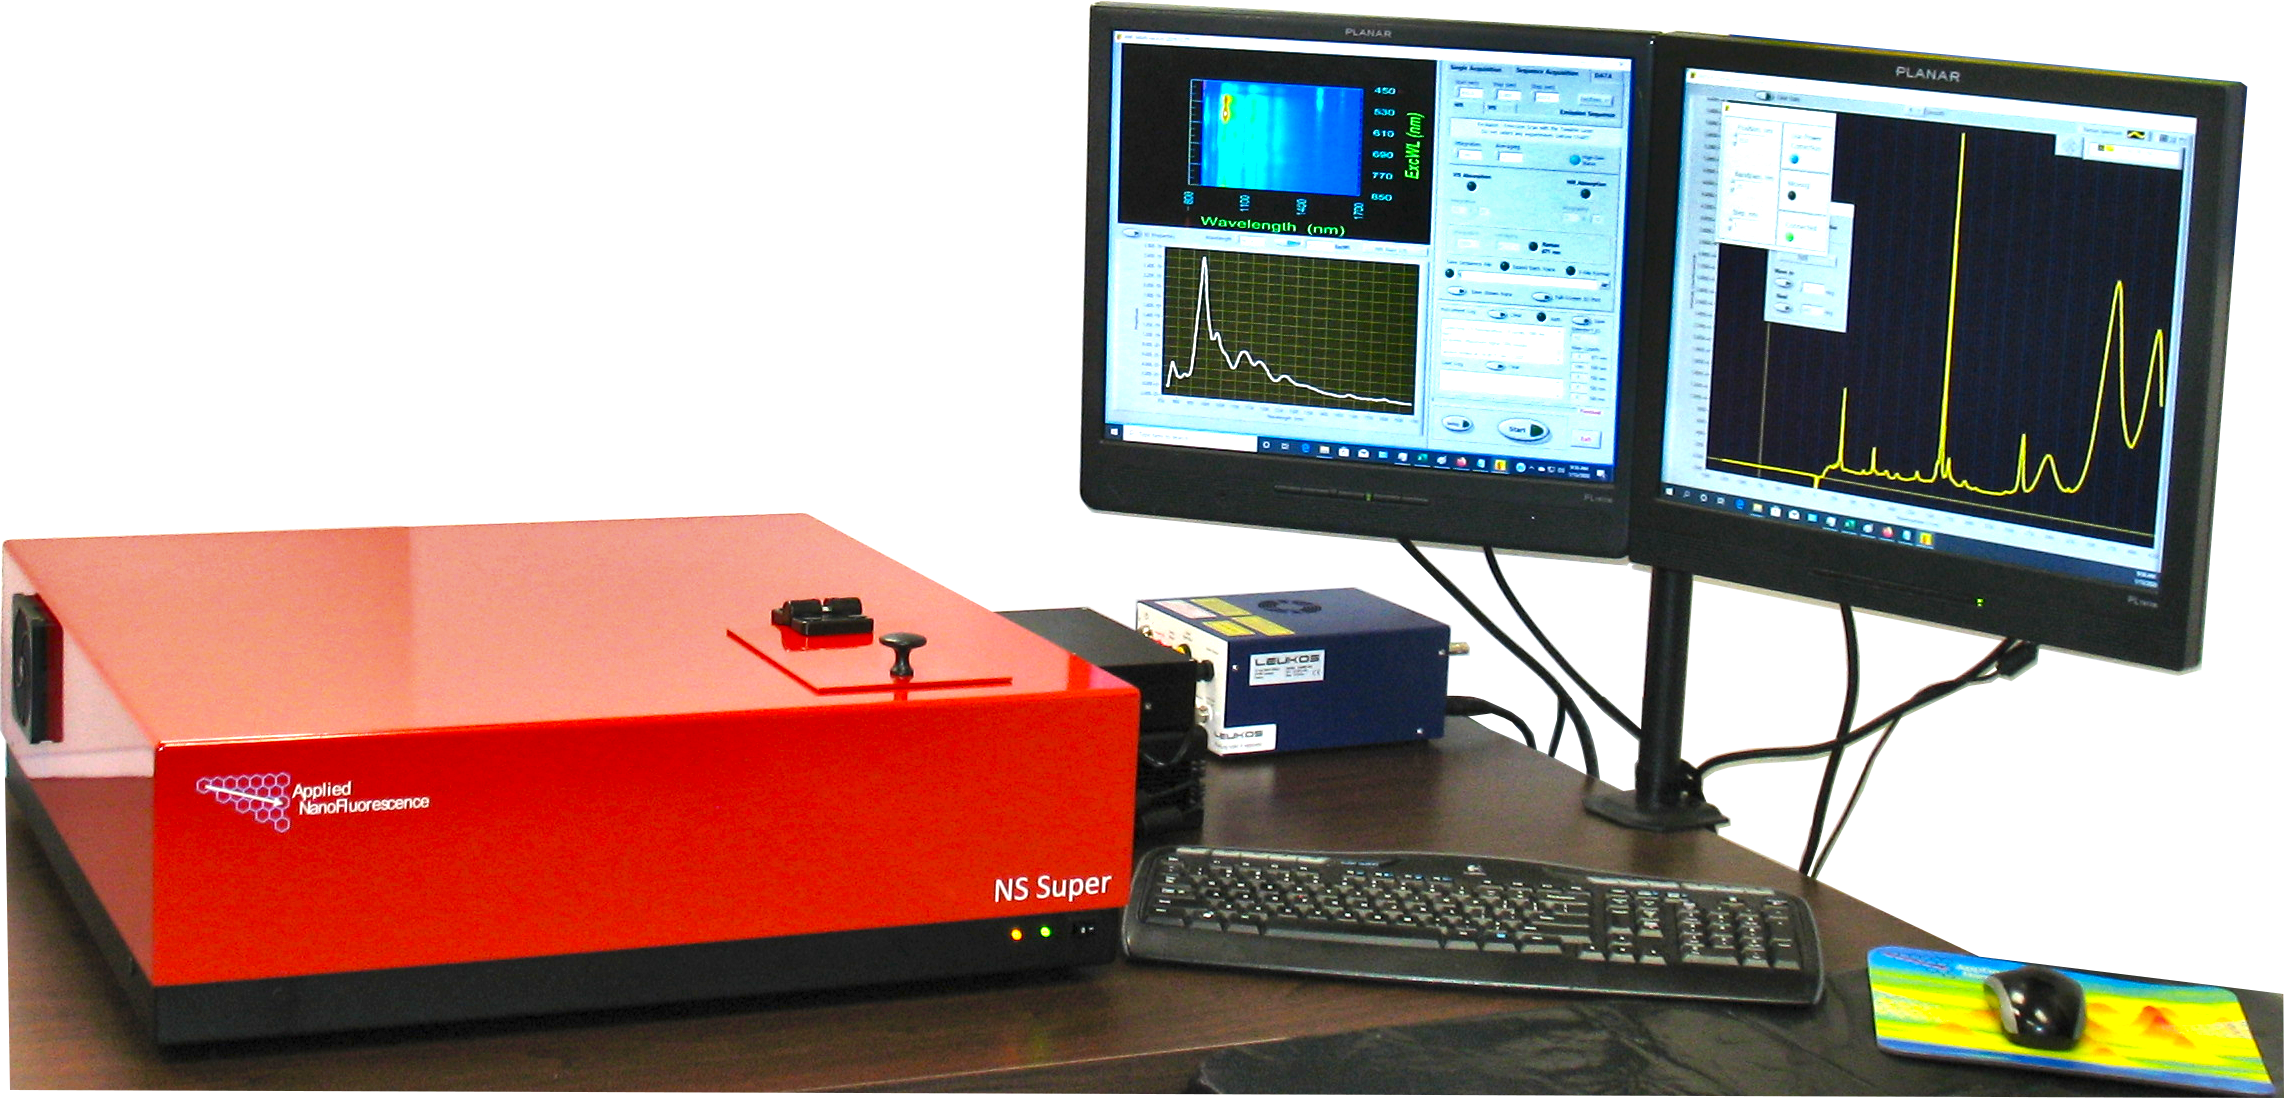 New- NS Super NanoSpectralyzer!